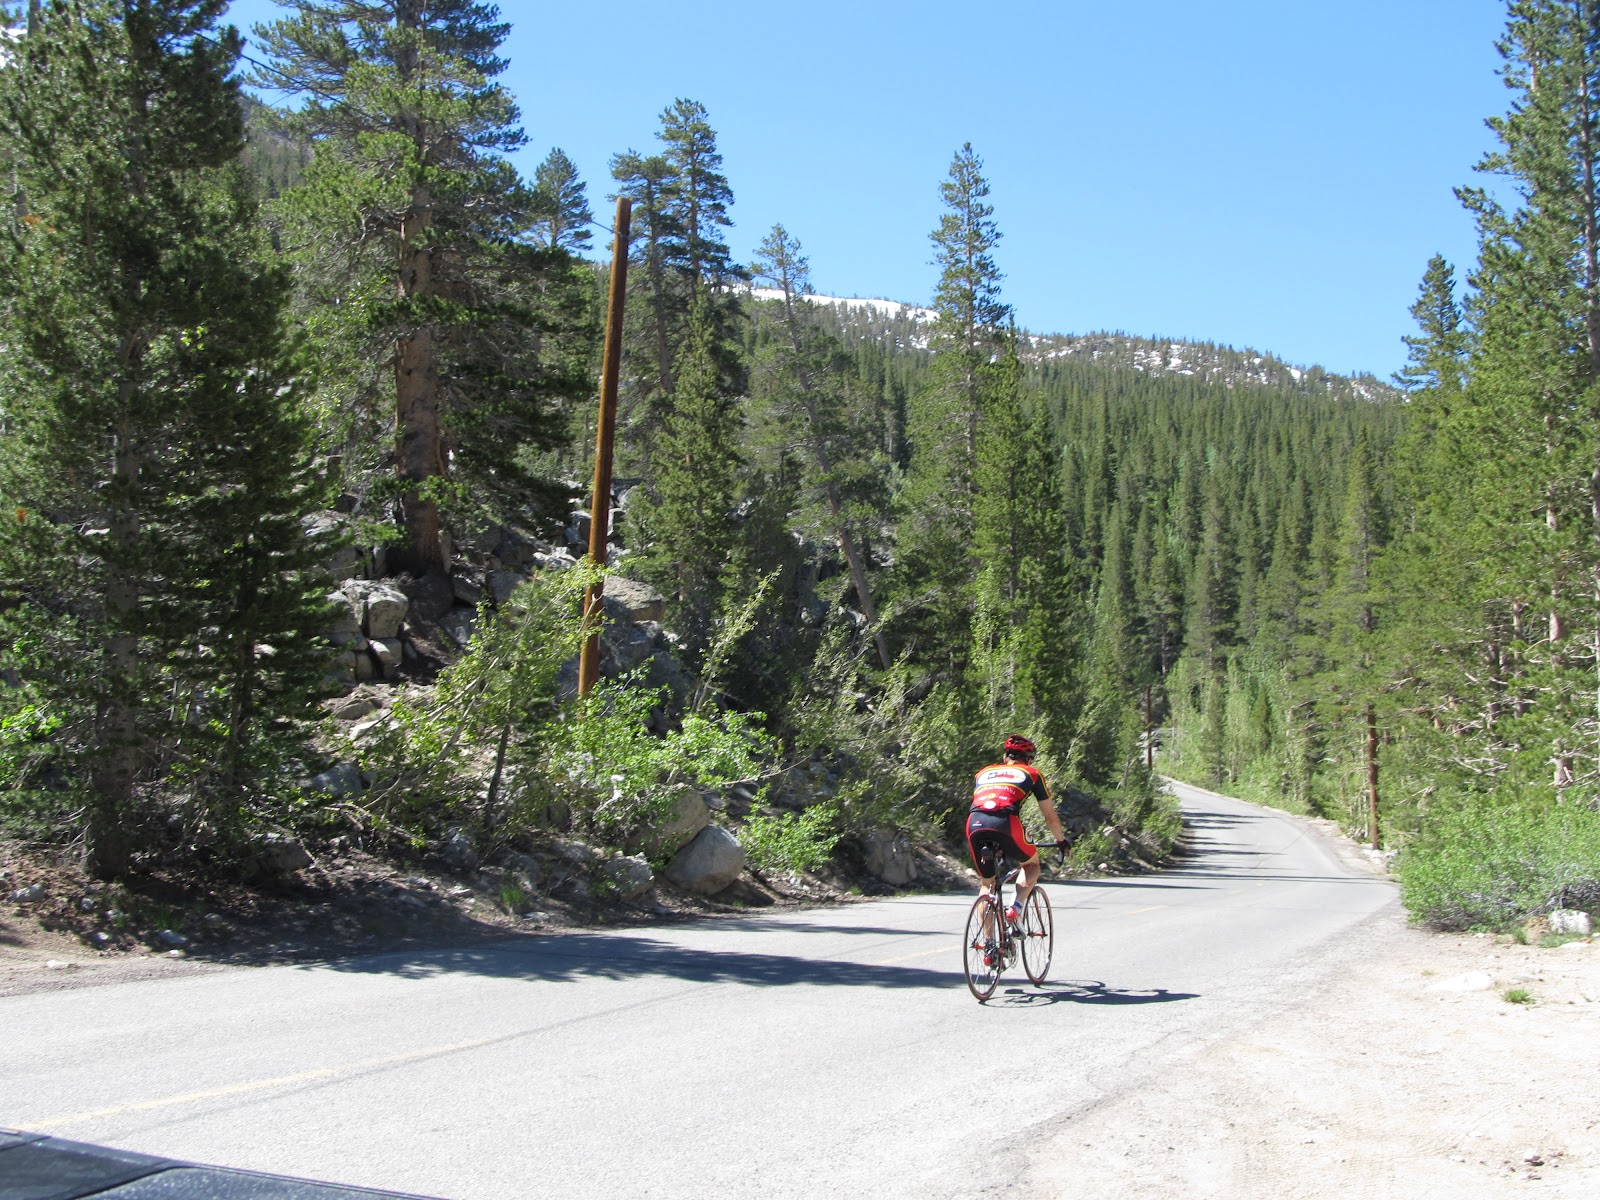 Bicycle ride up South Lake - cyclists on road